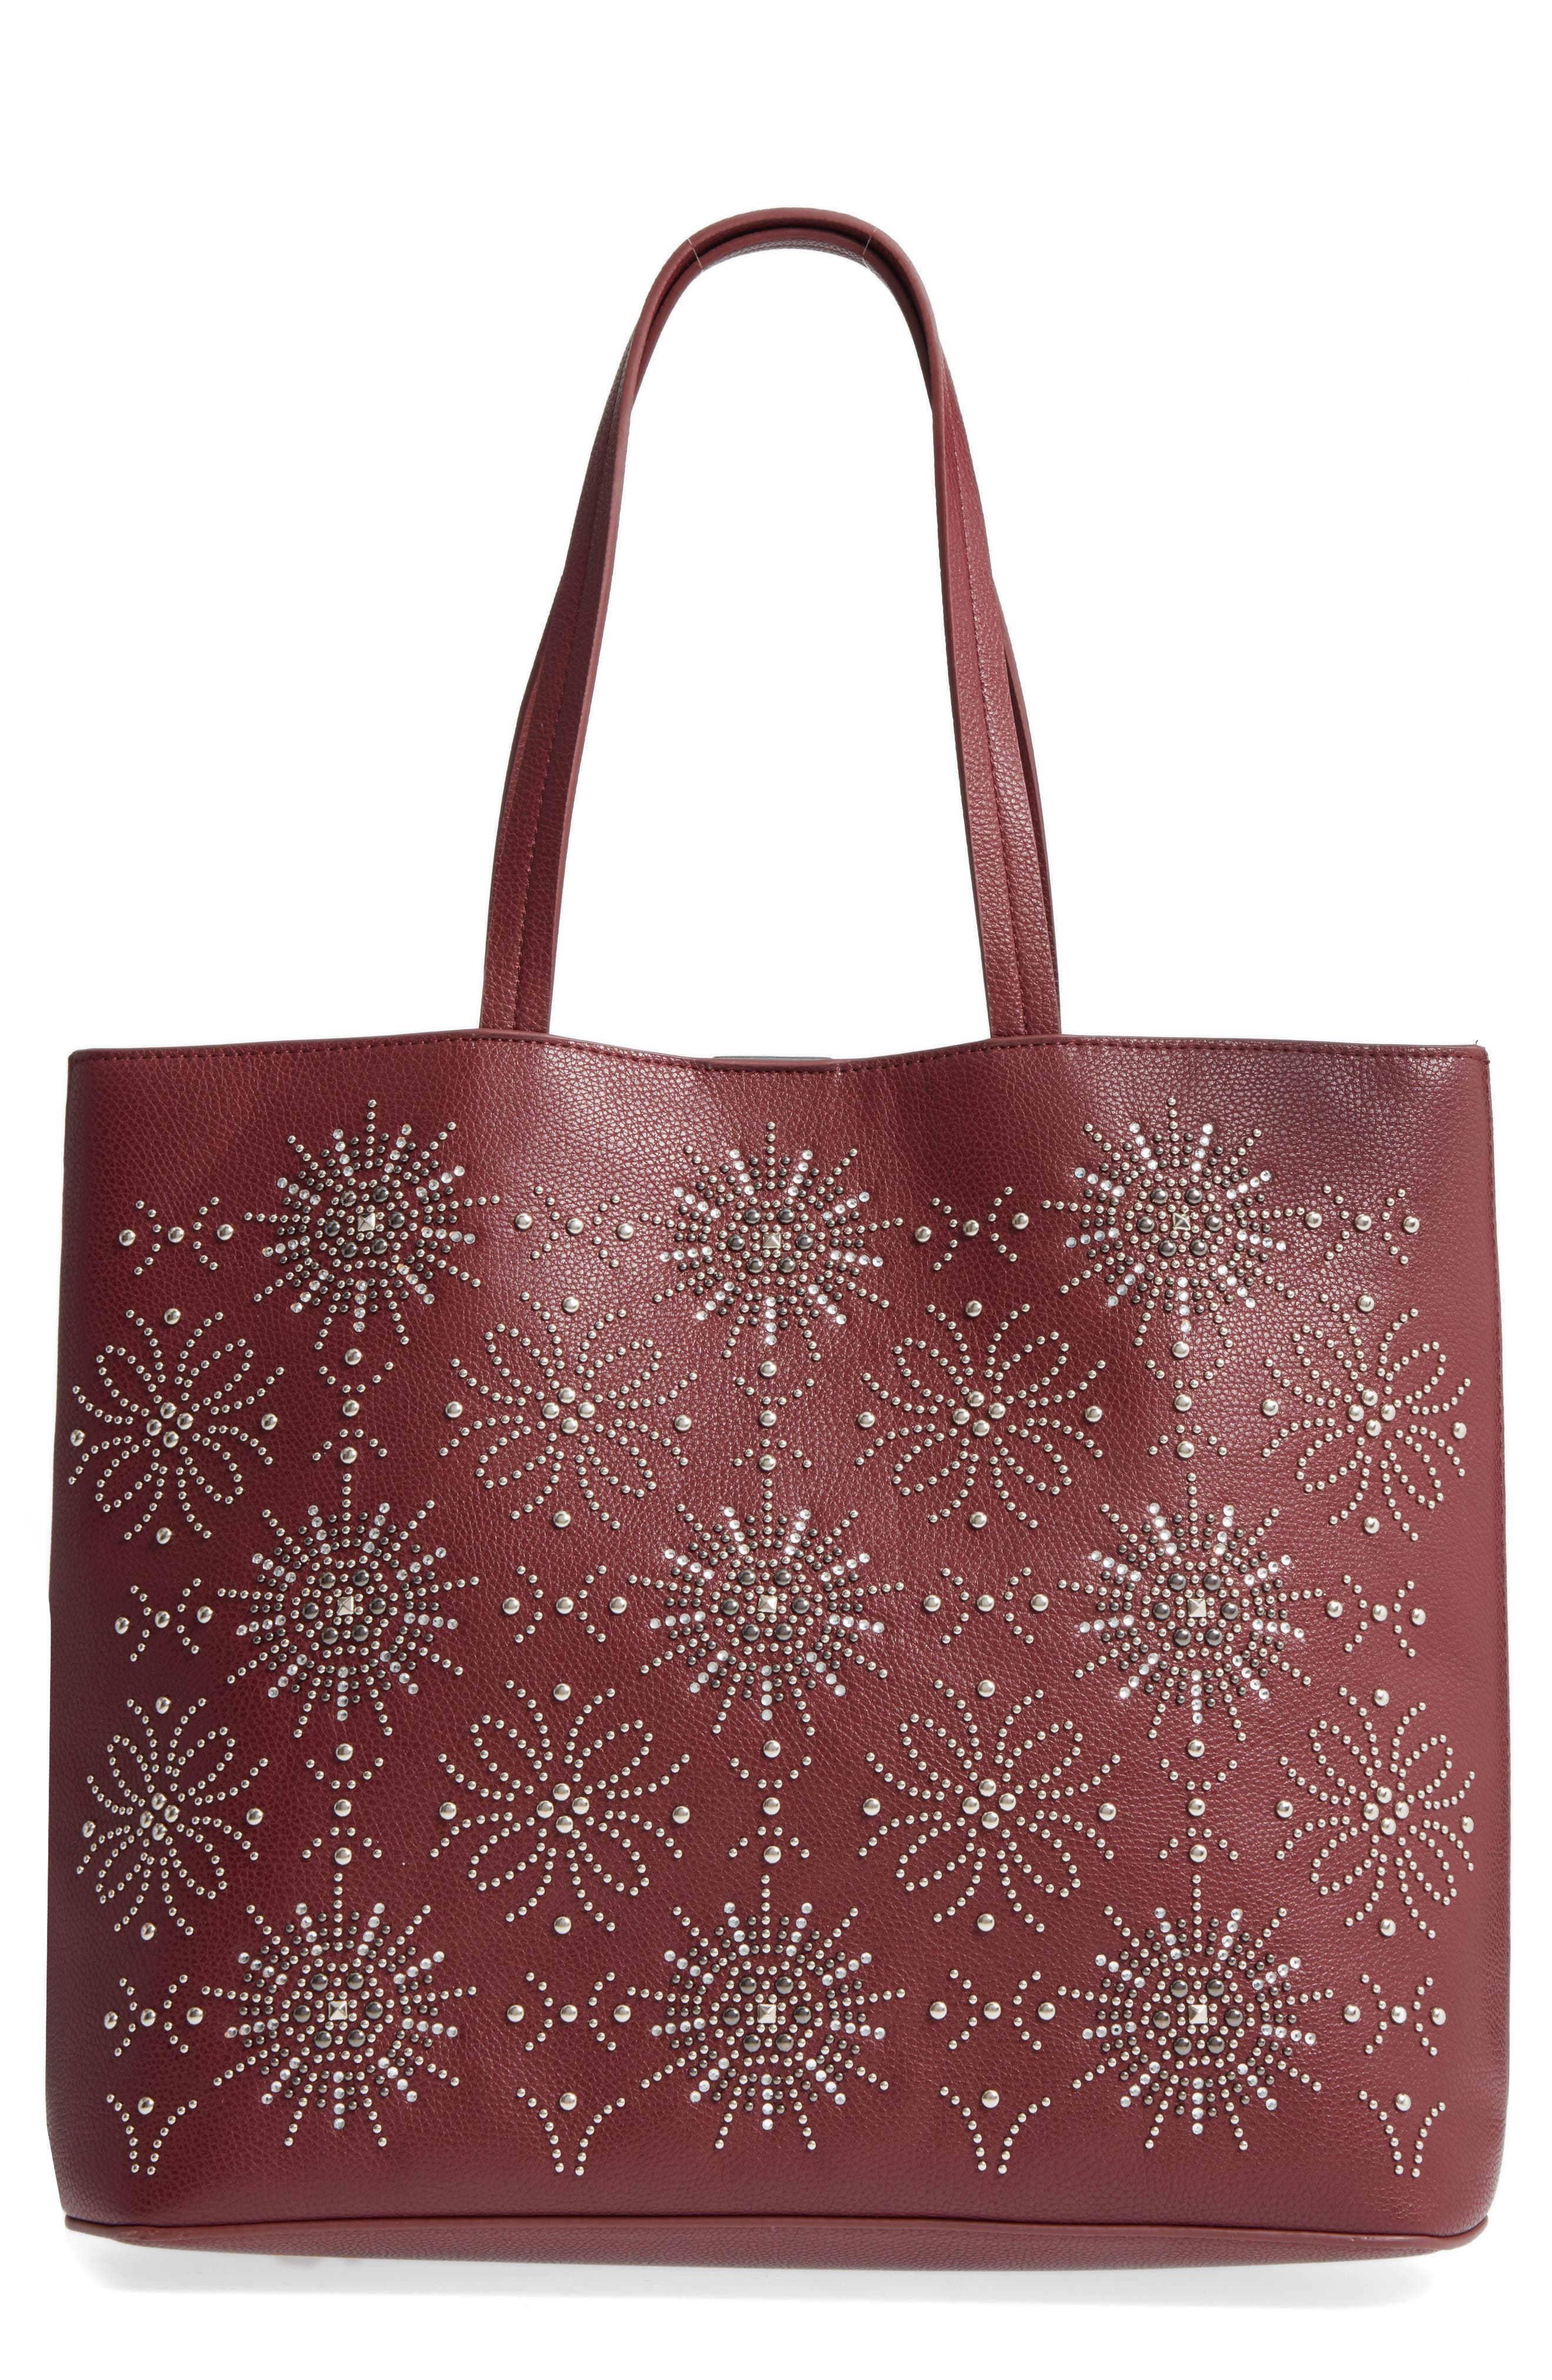 Chelsea28 Starburst Faux Leather Tote & Zip Pouch